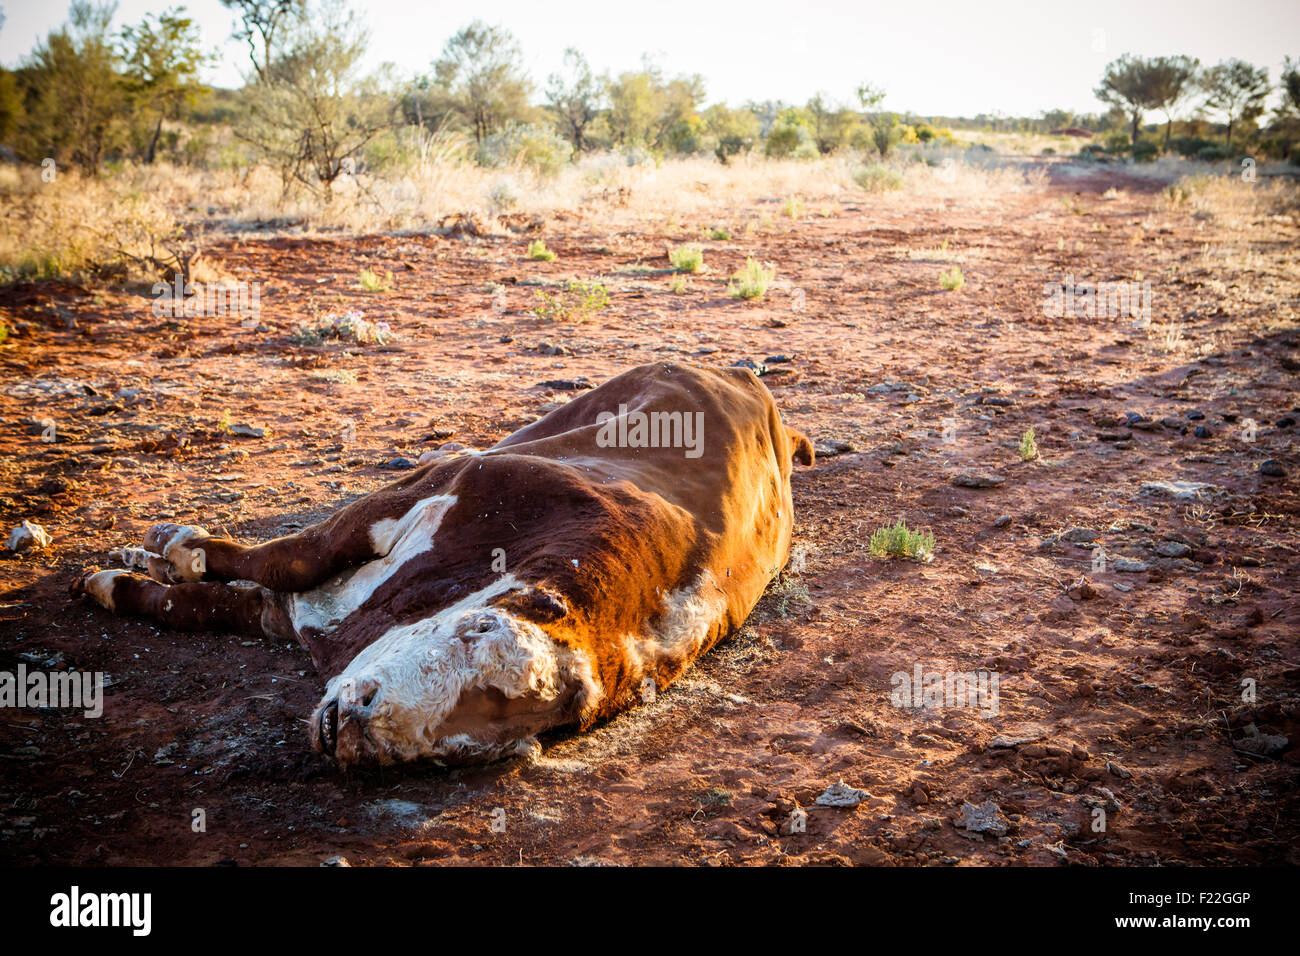 359205ce6ac5f A cow succumbs to the Australian Outback heat near Gemtree in the Northern  Territory